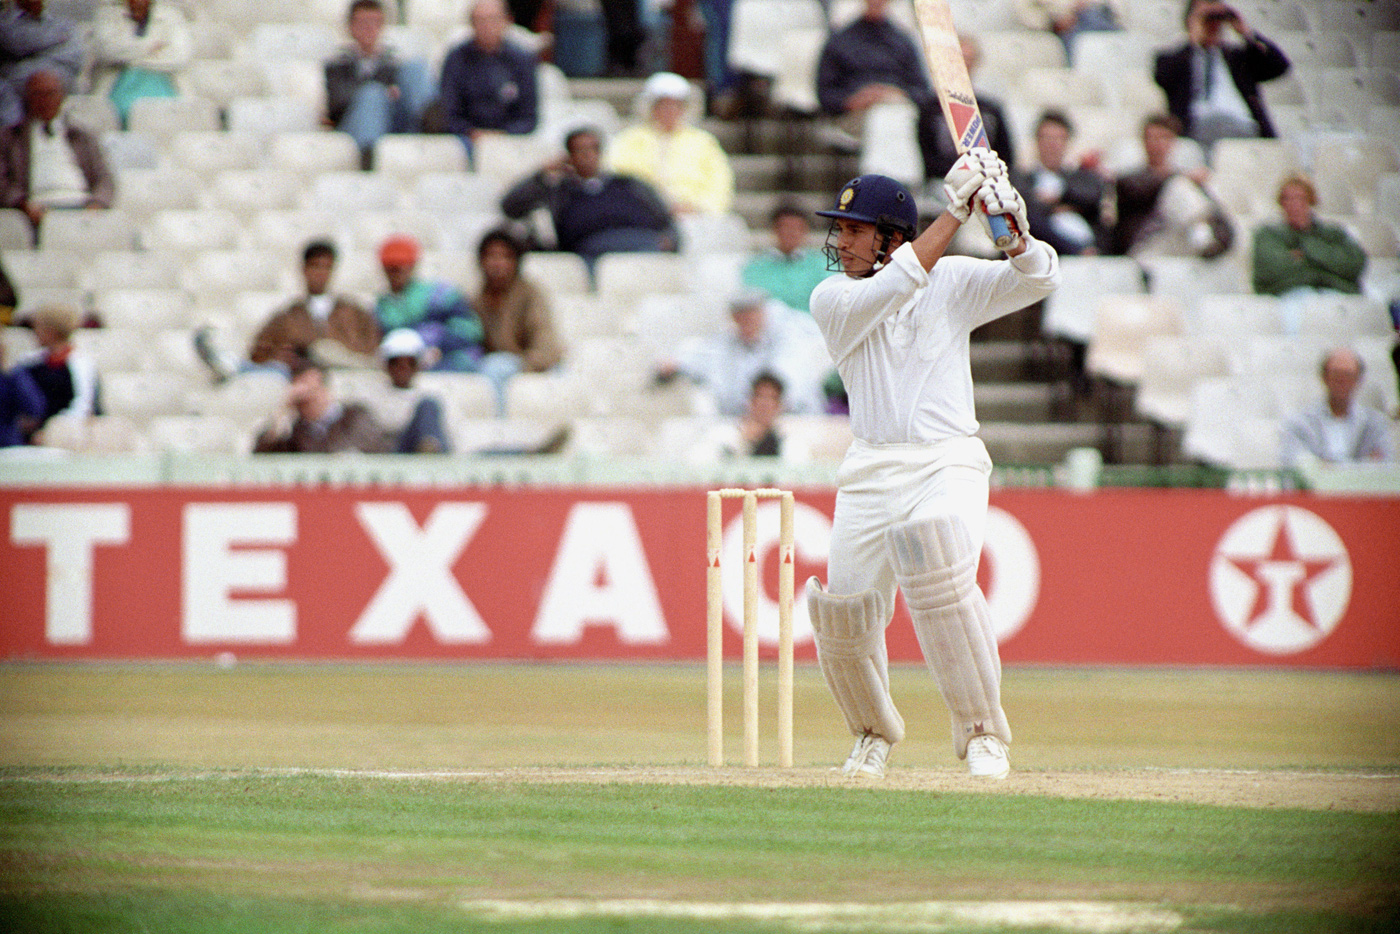 Although Tendulkar was focused on saving the Test, his innings had plenty of attractive attacking strokes, especially off the back foot